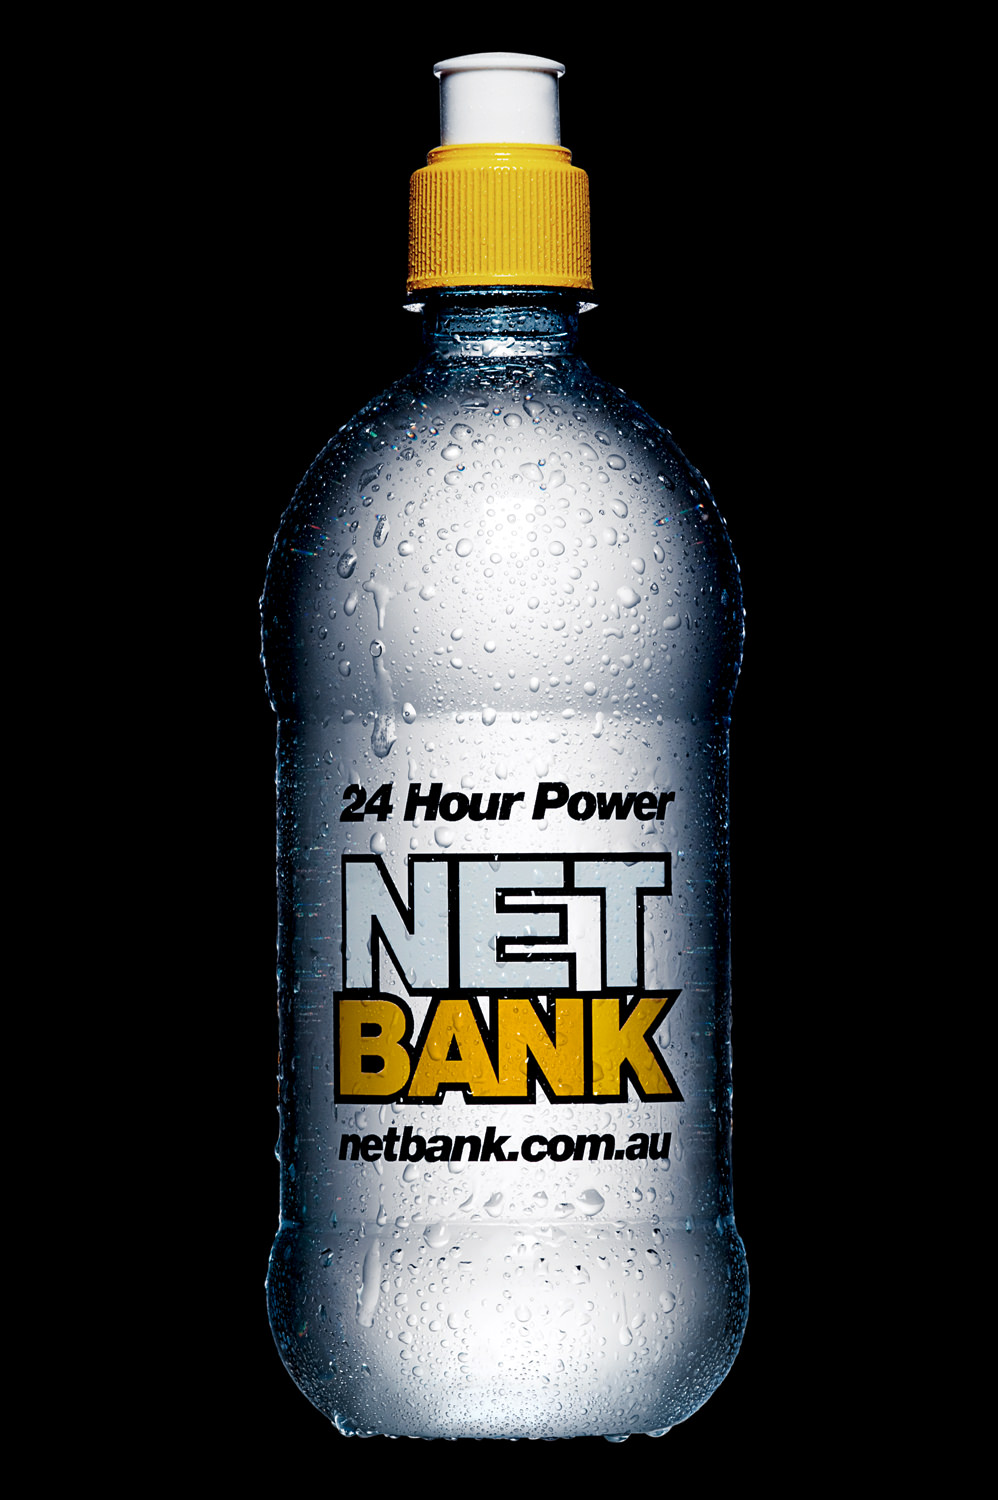 NETBANK-BOTTLE-STEPHEN-STEWART.jpg